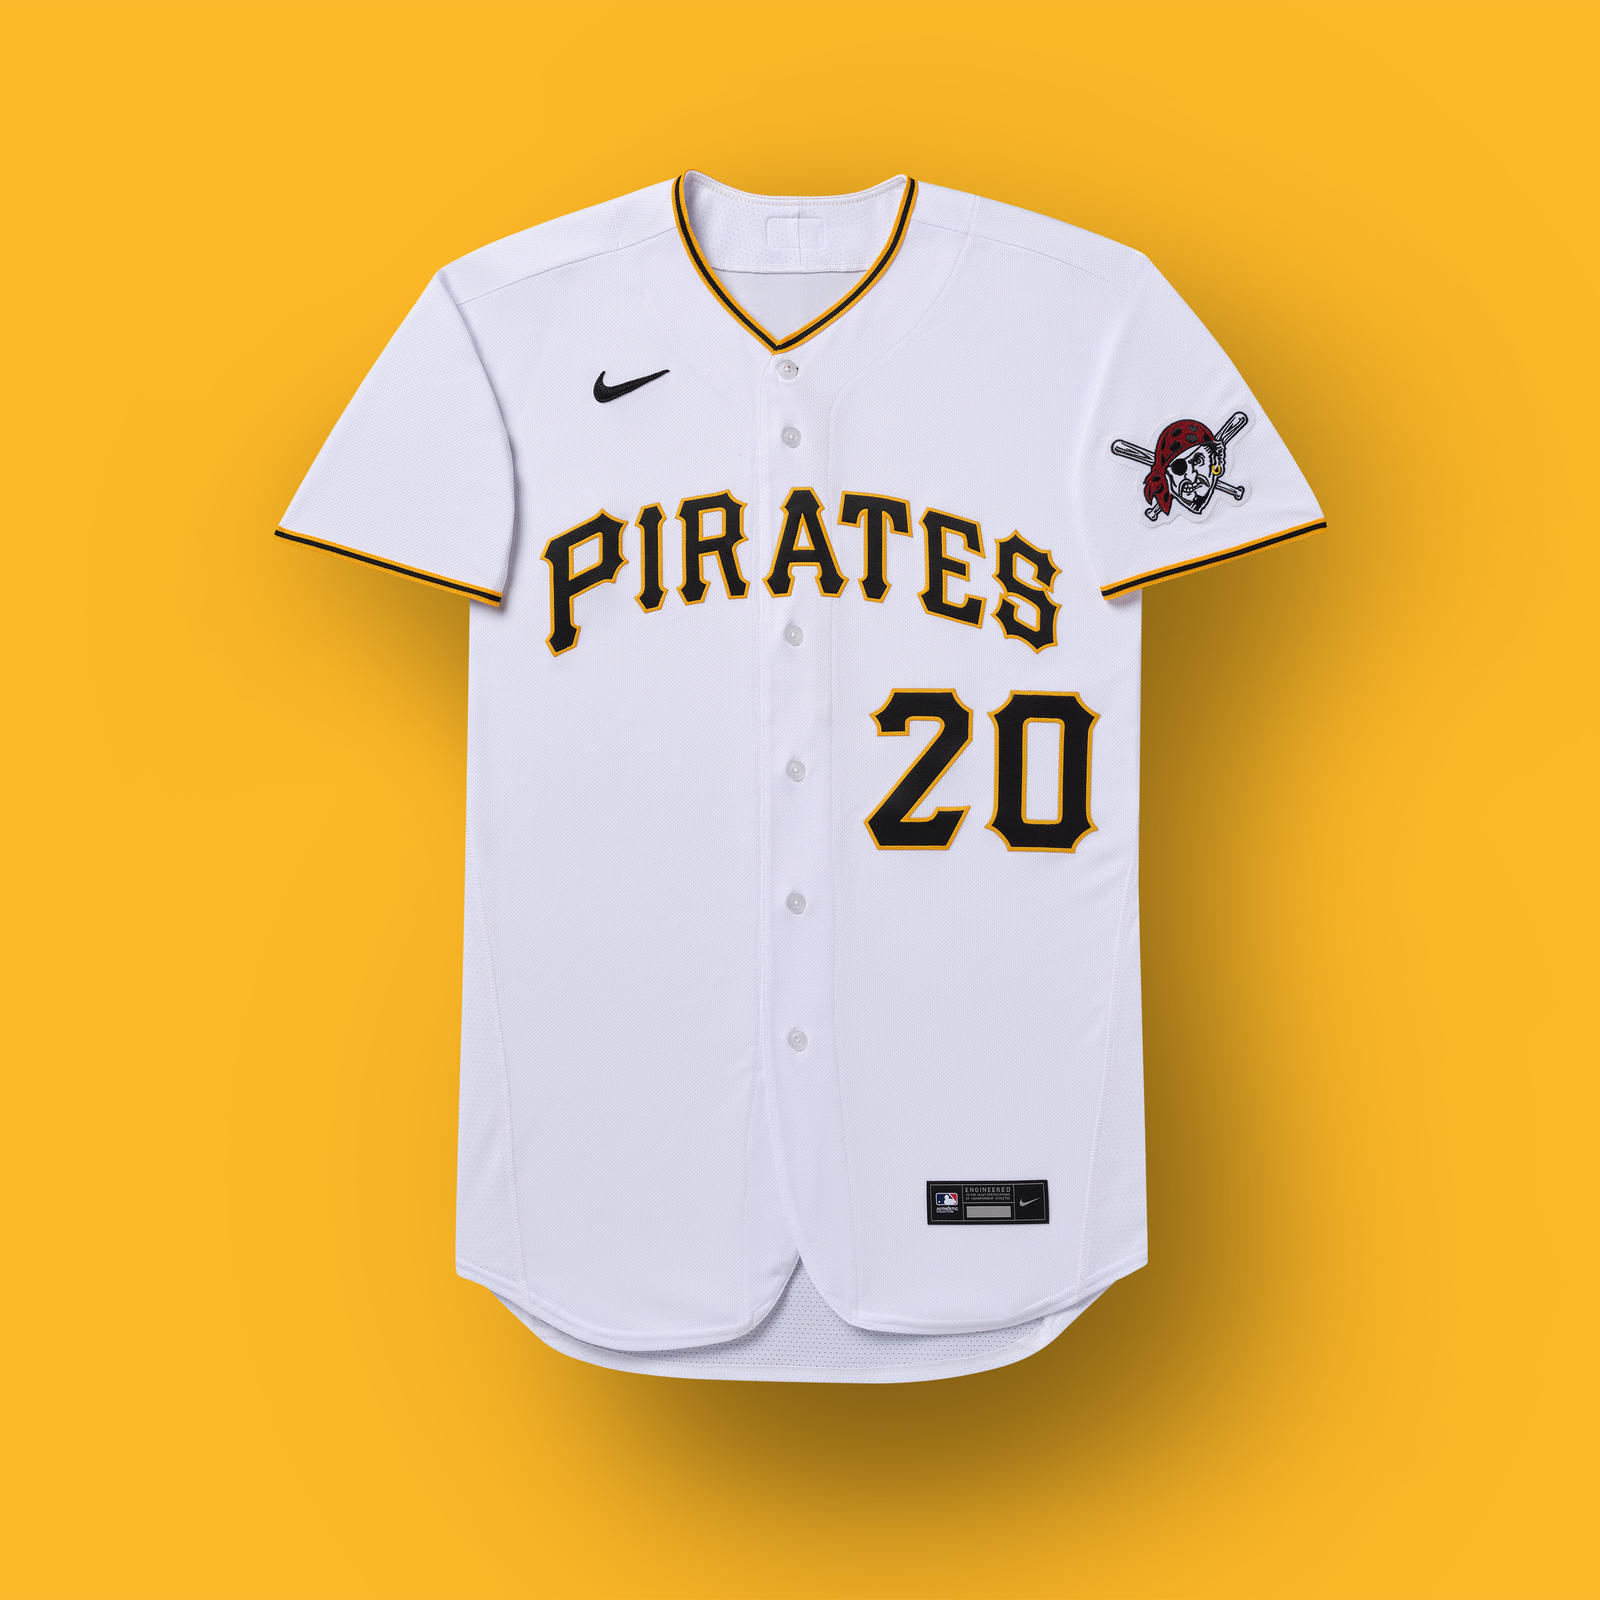 Nike x Major League Baseball Uniforms 2020 Official Images 9